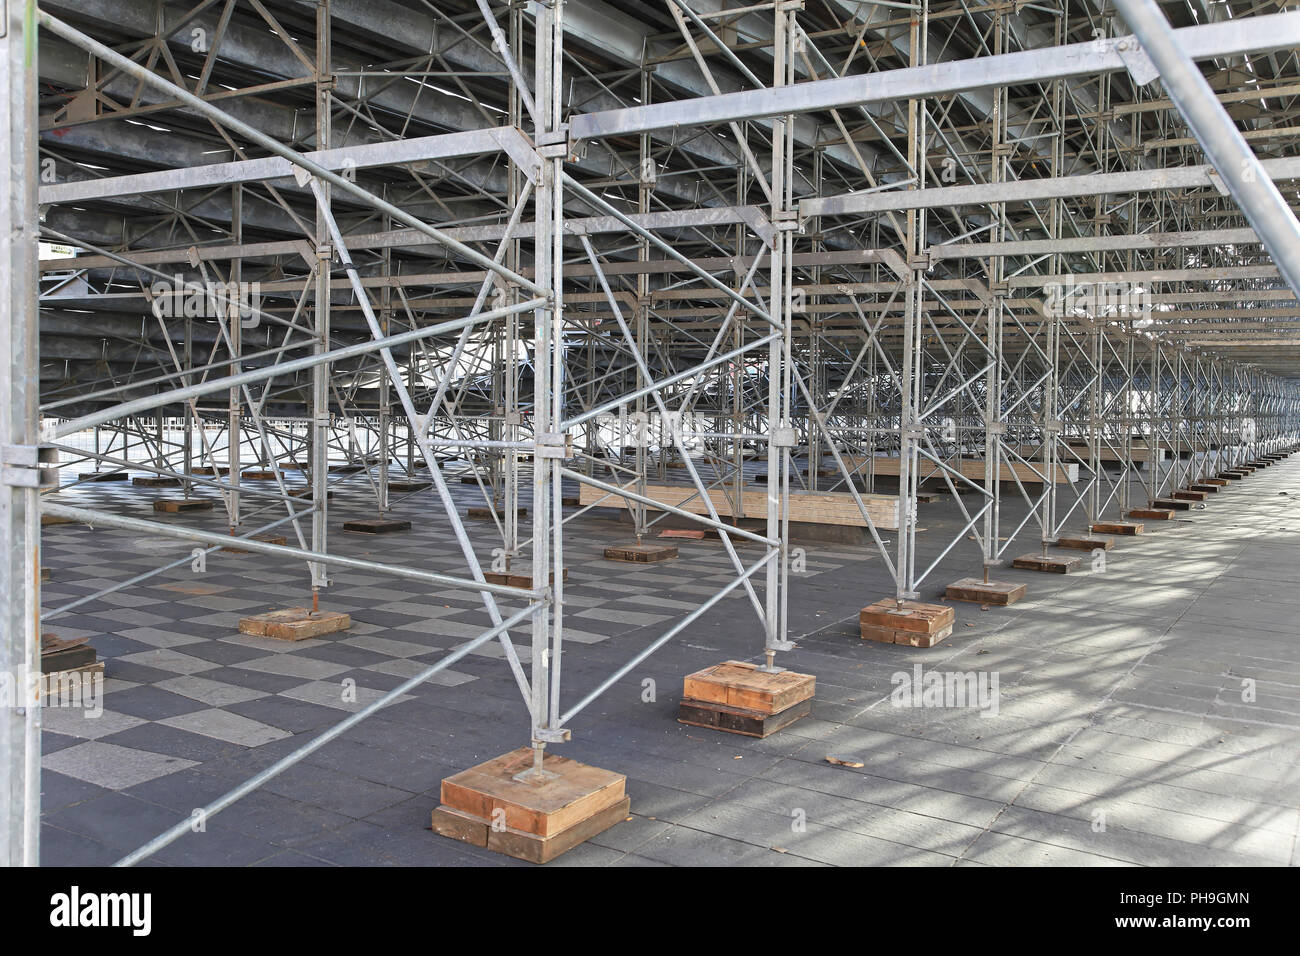 Galvanized steel support structure under prefabricated stands - Stock Image